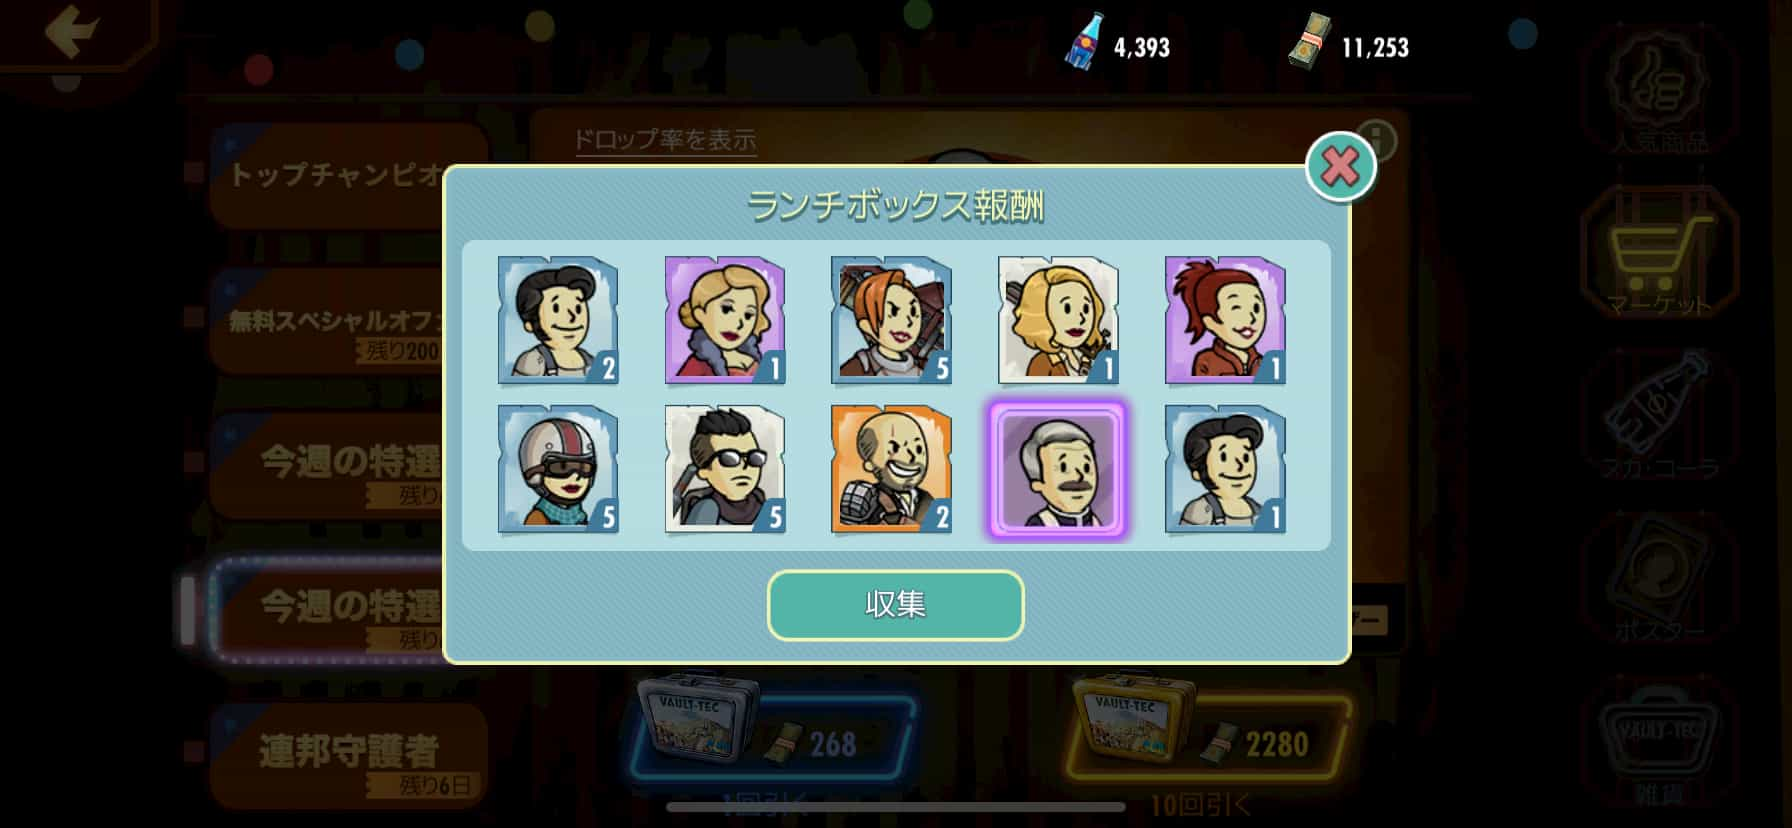 Fallout shelter online ガチャ結果